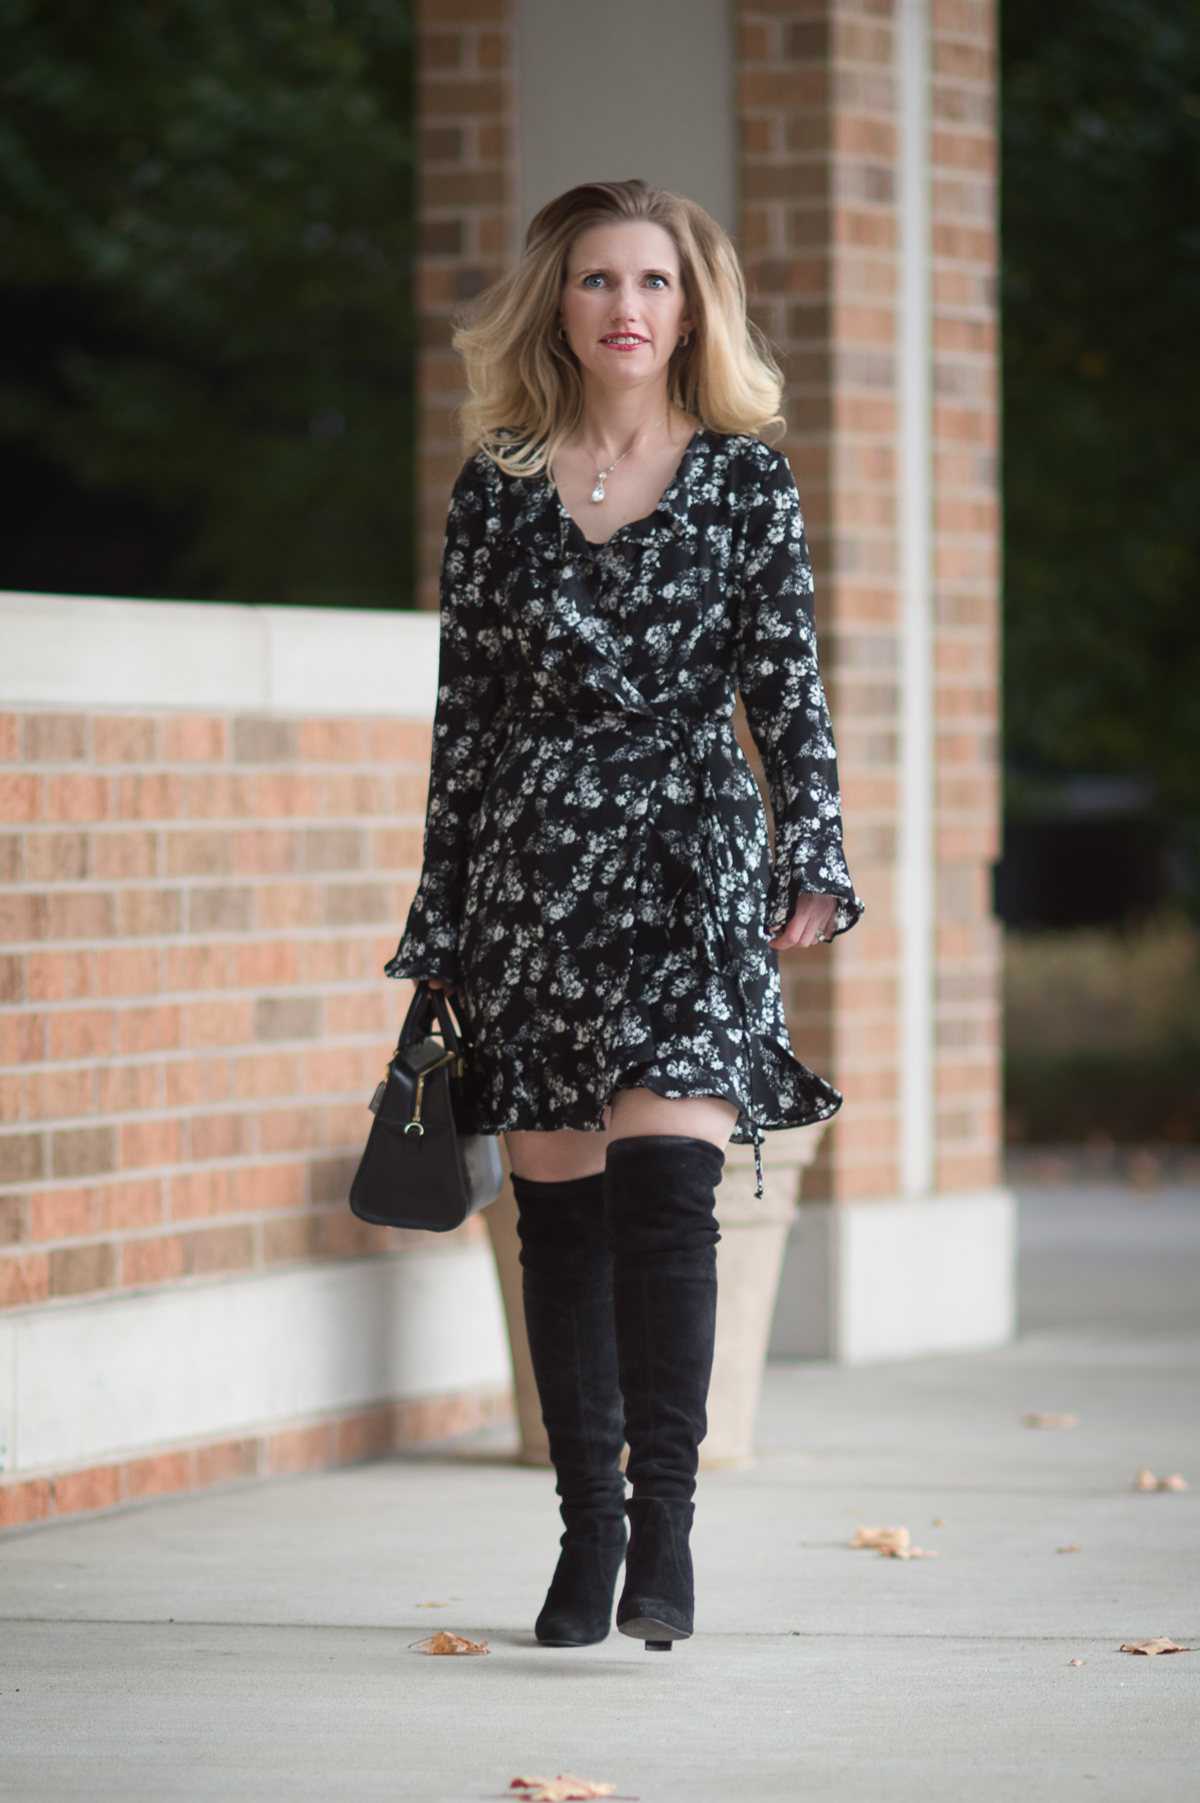 8 Inspiring Ways to Wear Dresses in the Winter and Stay ...